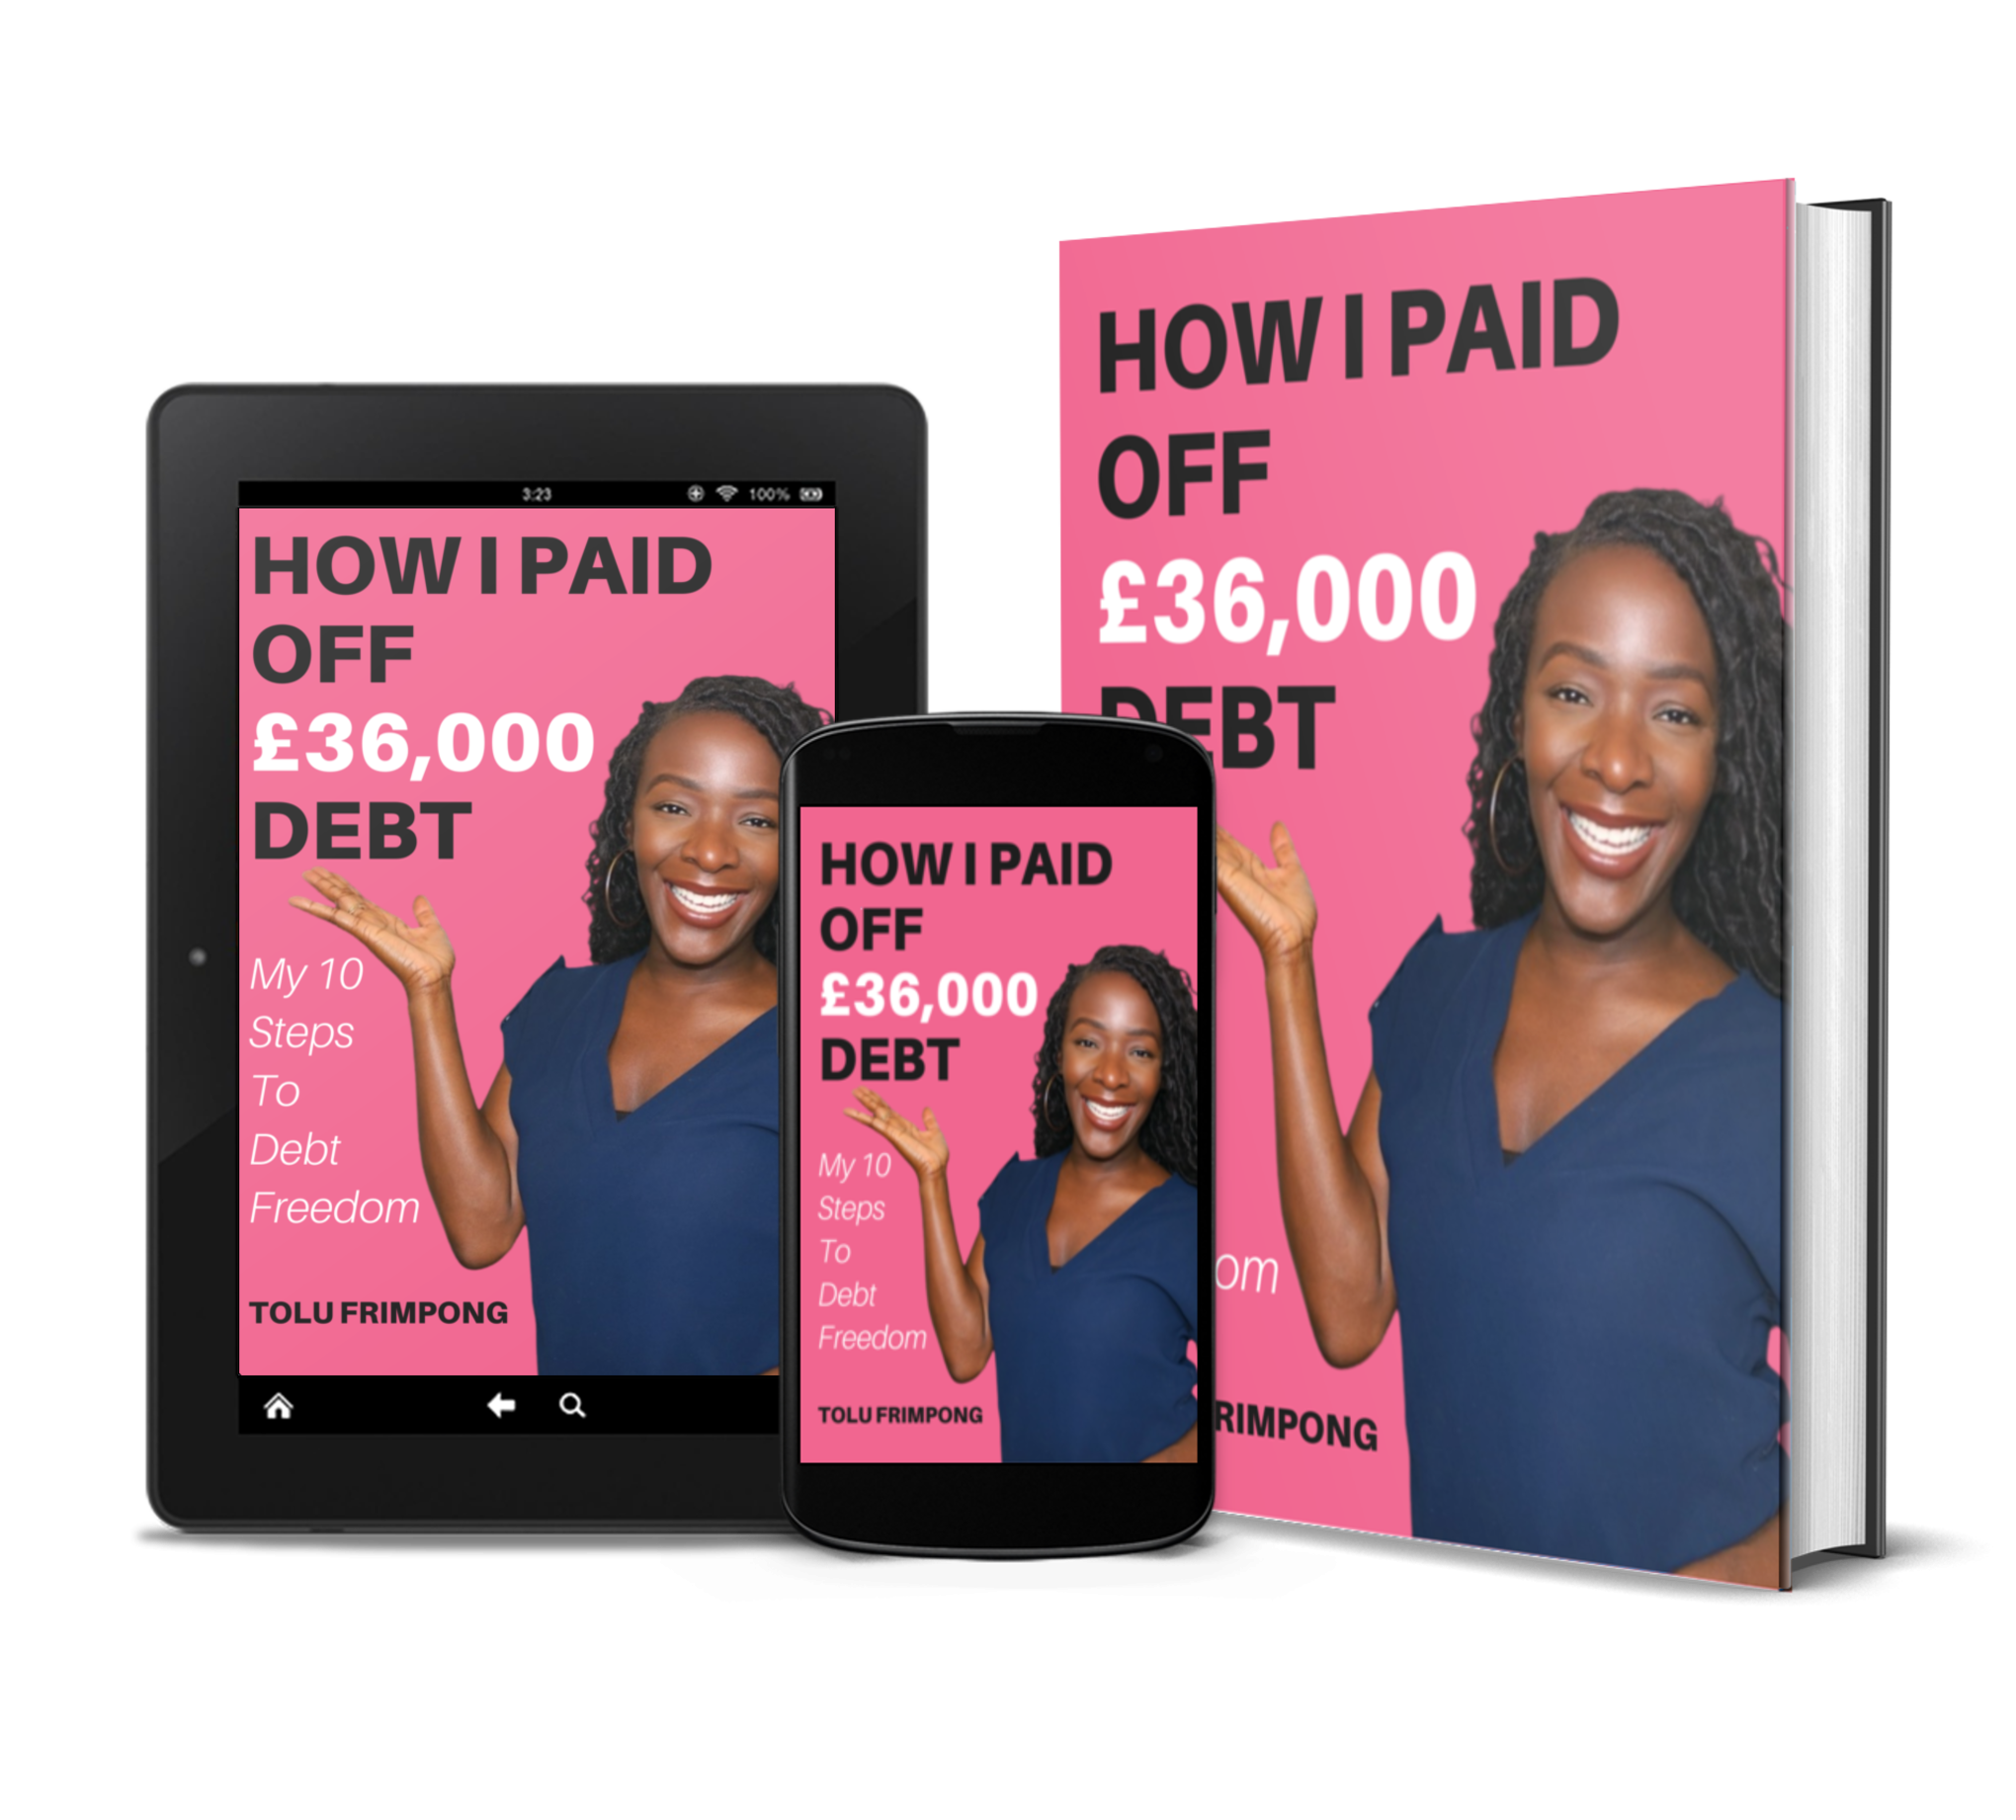 HOW I PAID OFF £36000 DEBT: MY 10 STEPS TO DEBT FREEDOM